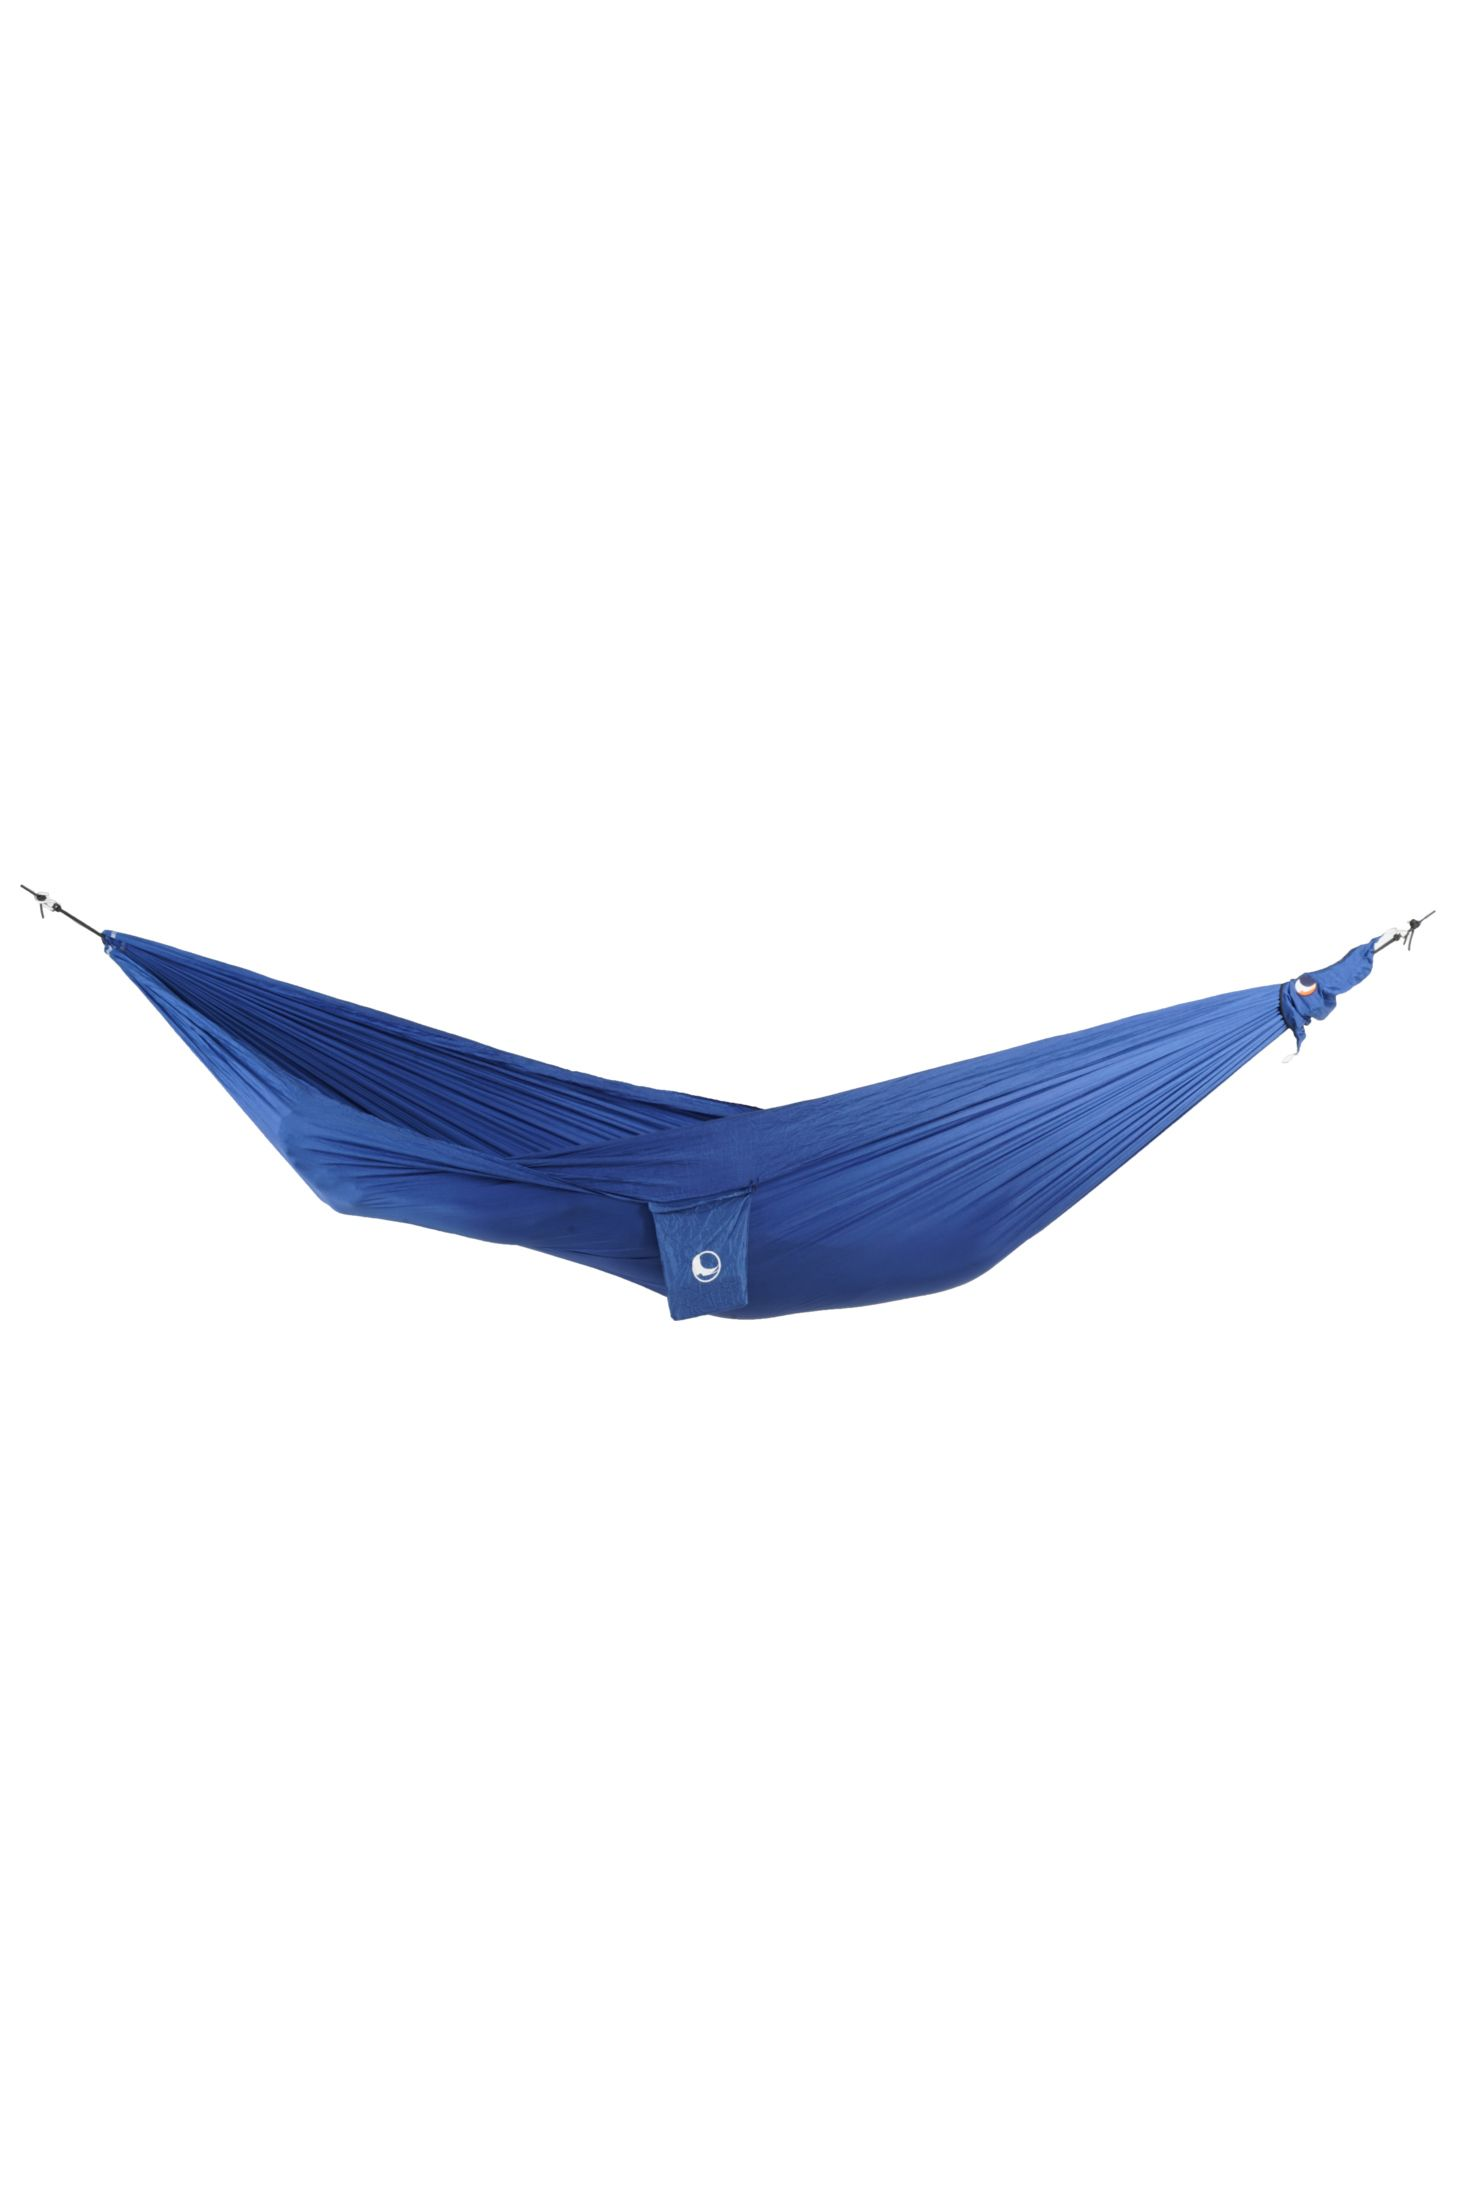 DV Ticket To The Moon COMPACT HAMMOCK Royal Blue